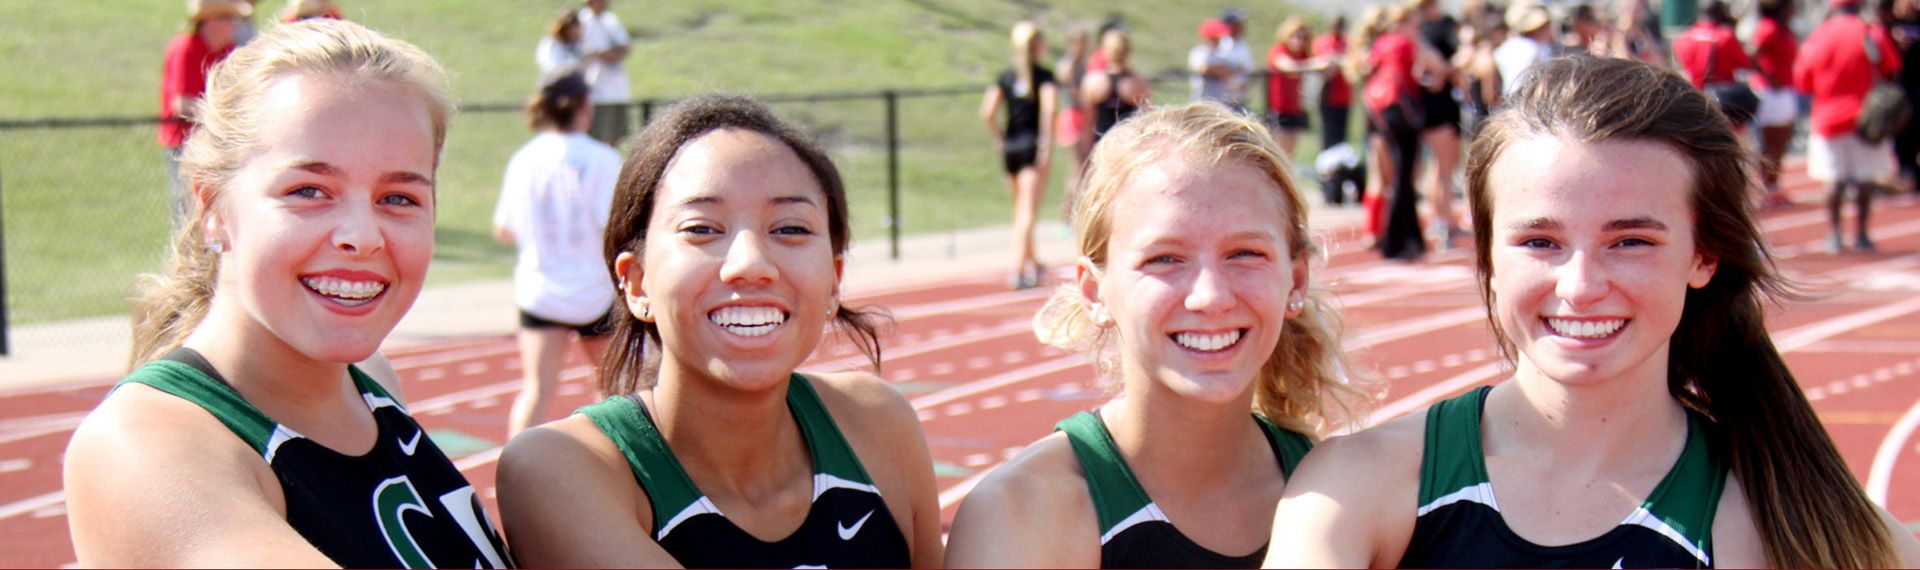 Girls track and field athletes smile at camera.